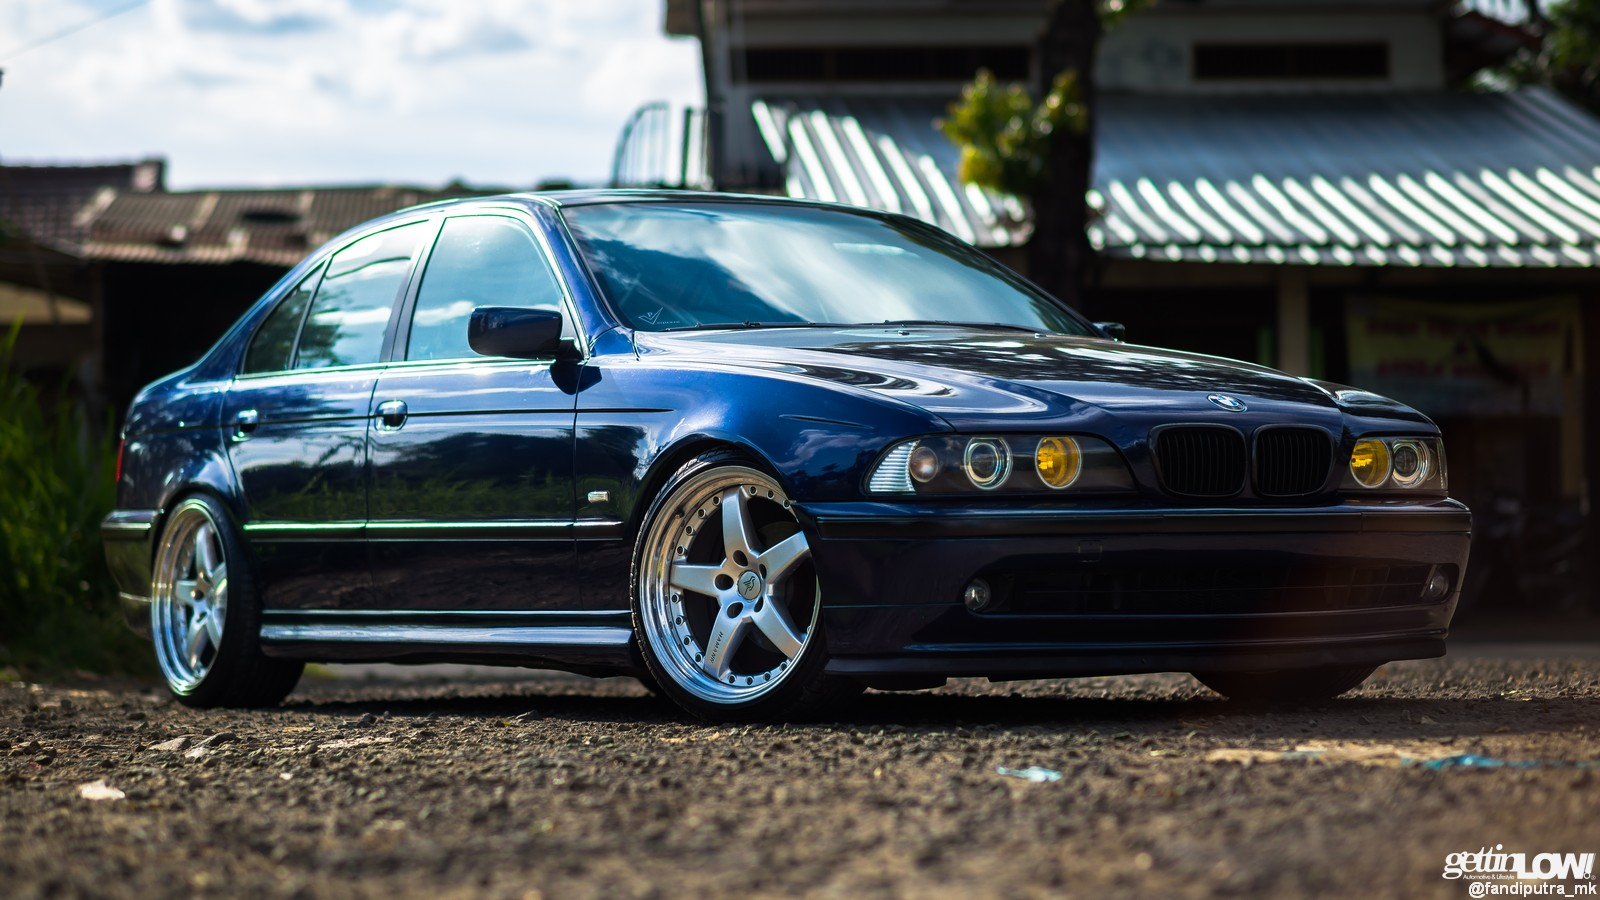 Jimmi BMW E38